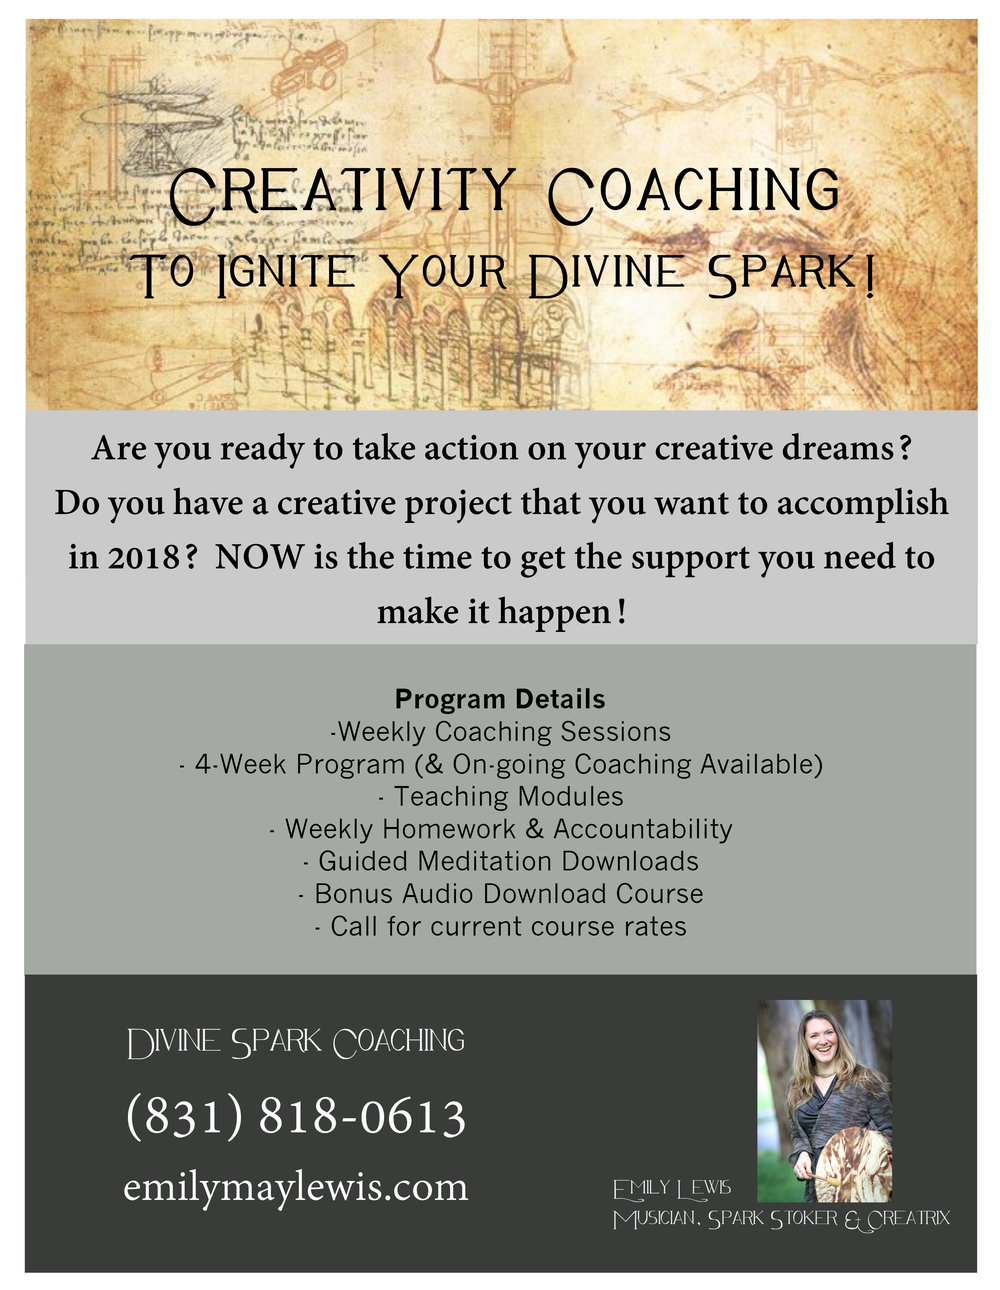 Creativity Coaching Flyer Current Rate.jpg